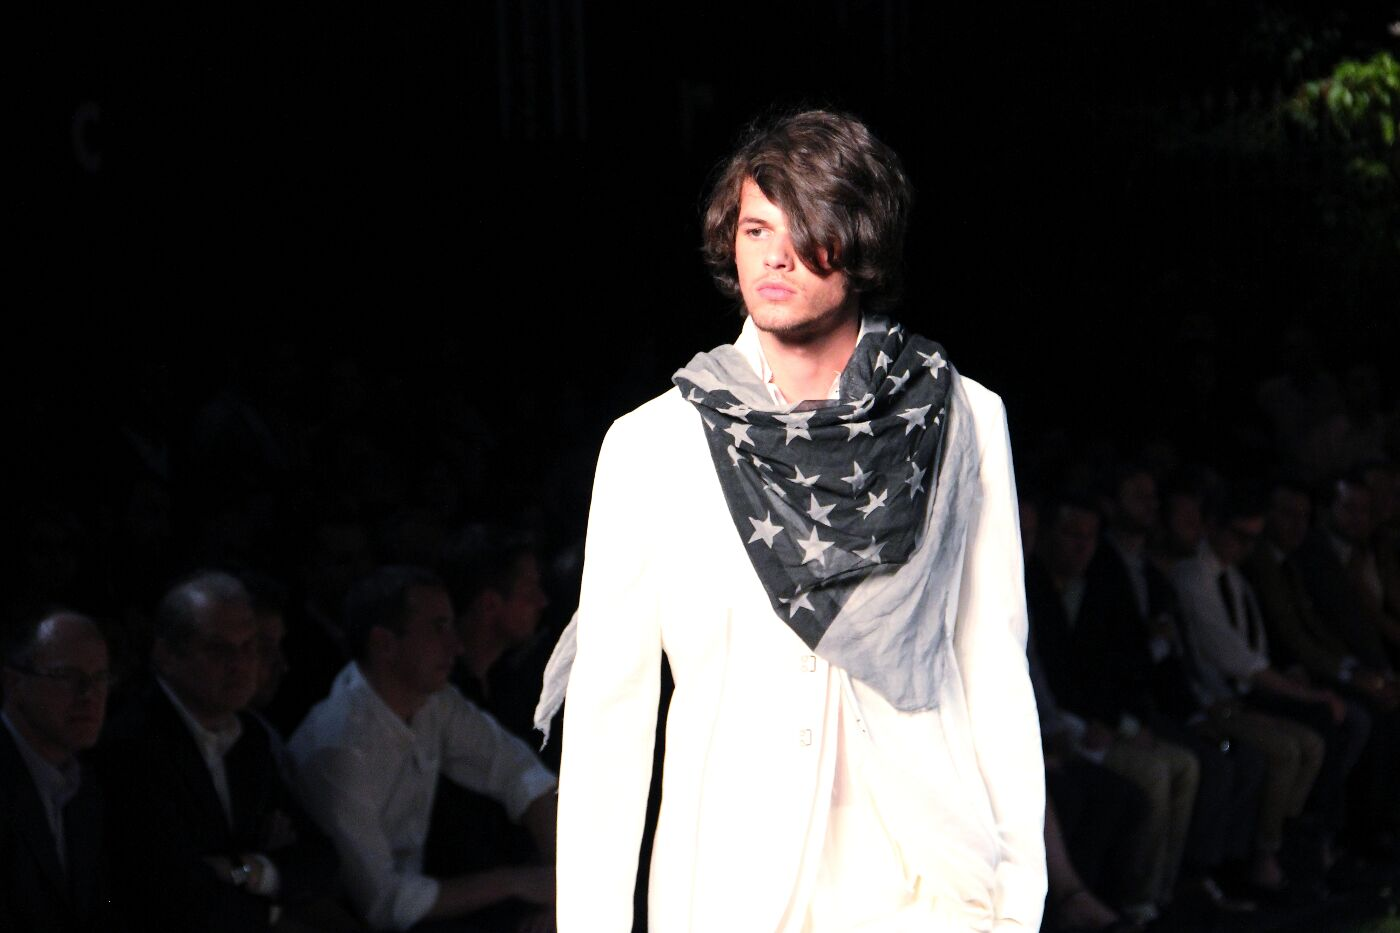 john-varvatos-ss-spring-summer-2012-milano-fashion-week